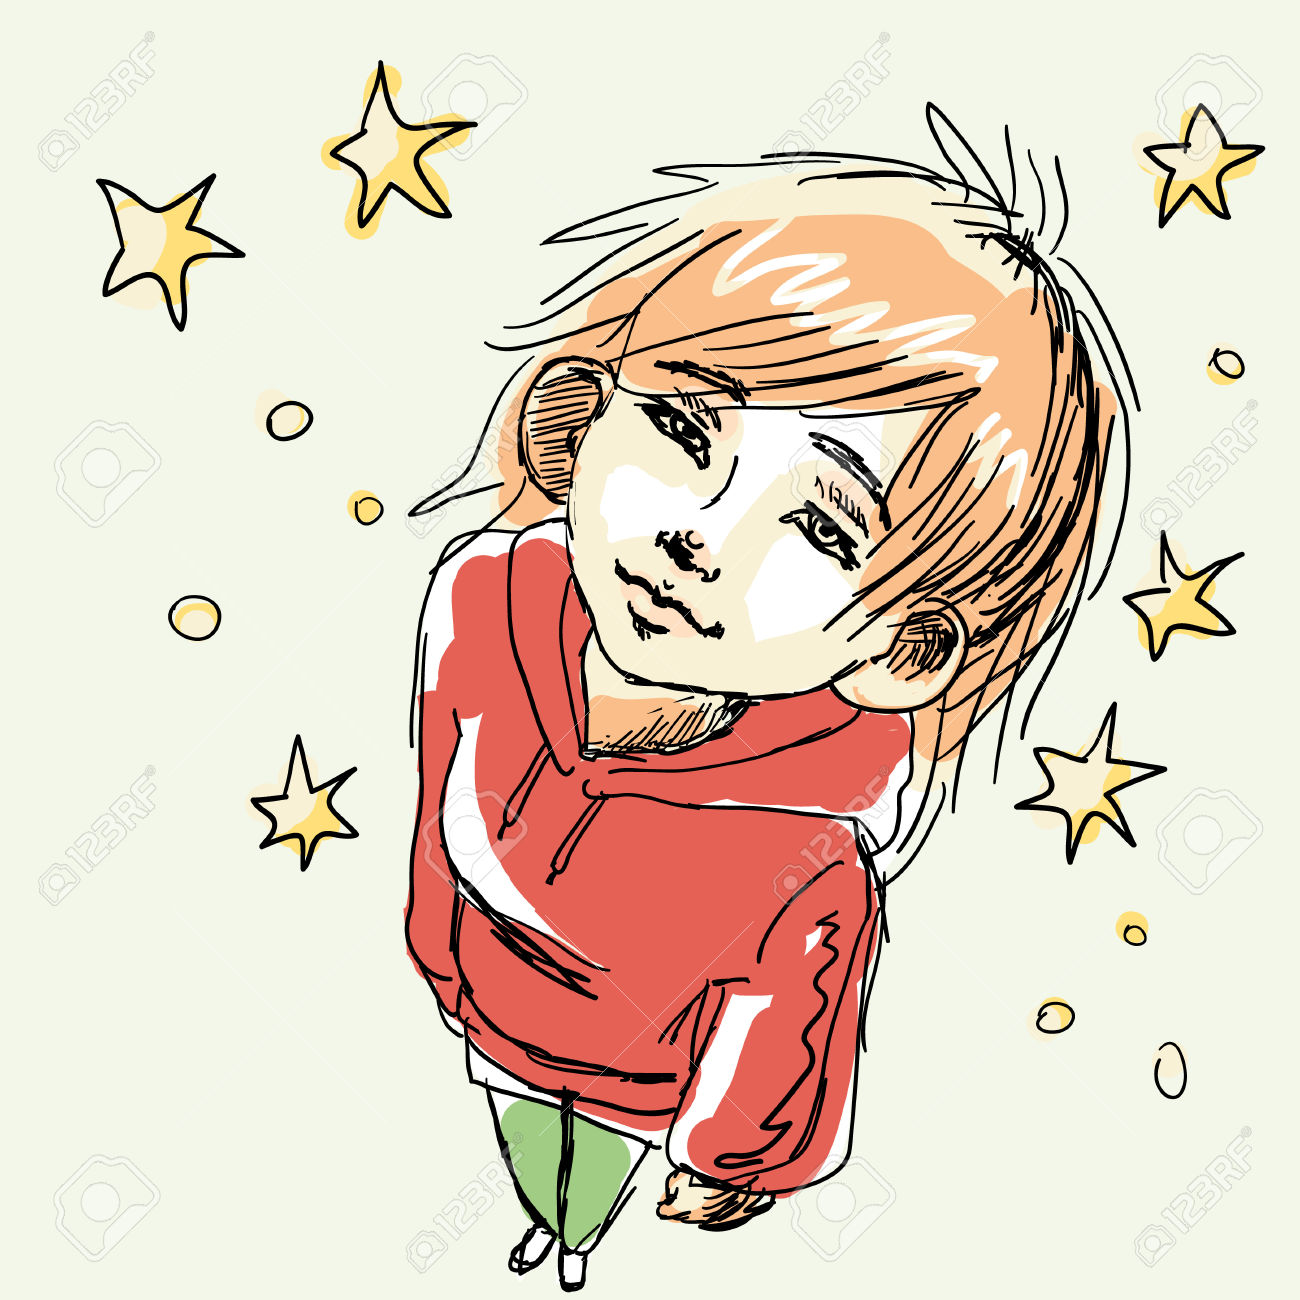 Vector Illustration Of A Girl In Red Hoodie And Green Jeans.